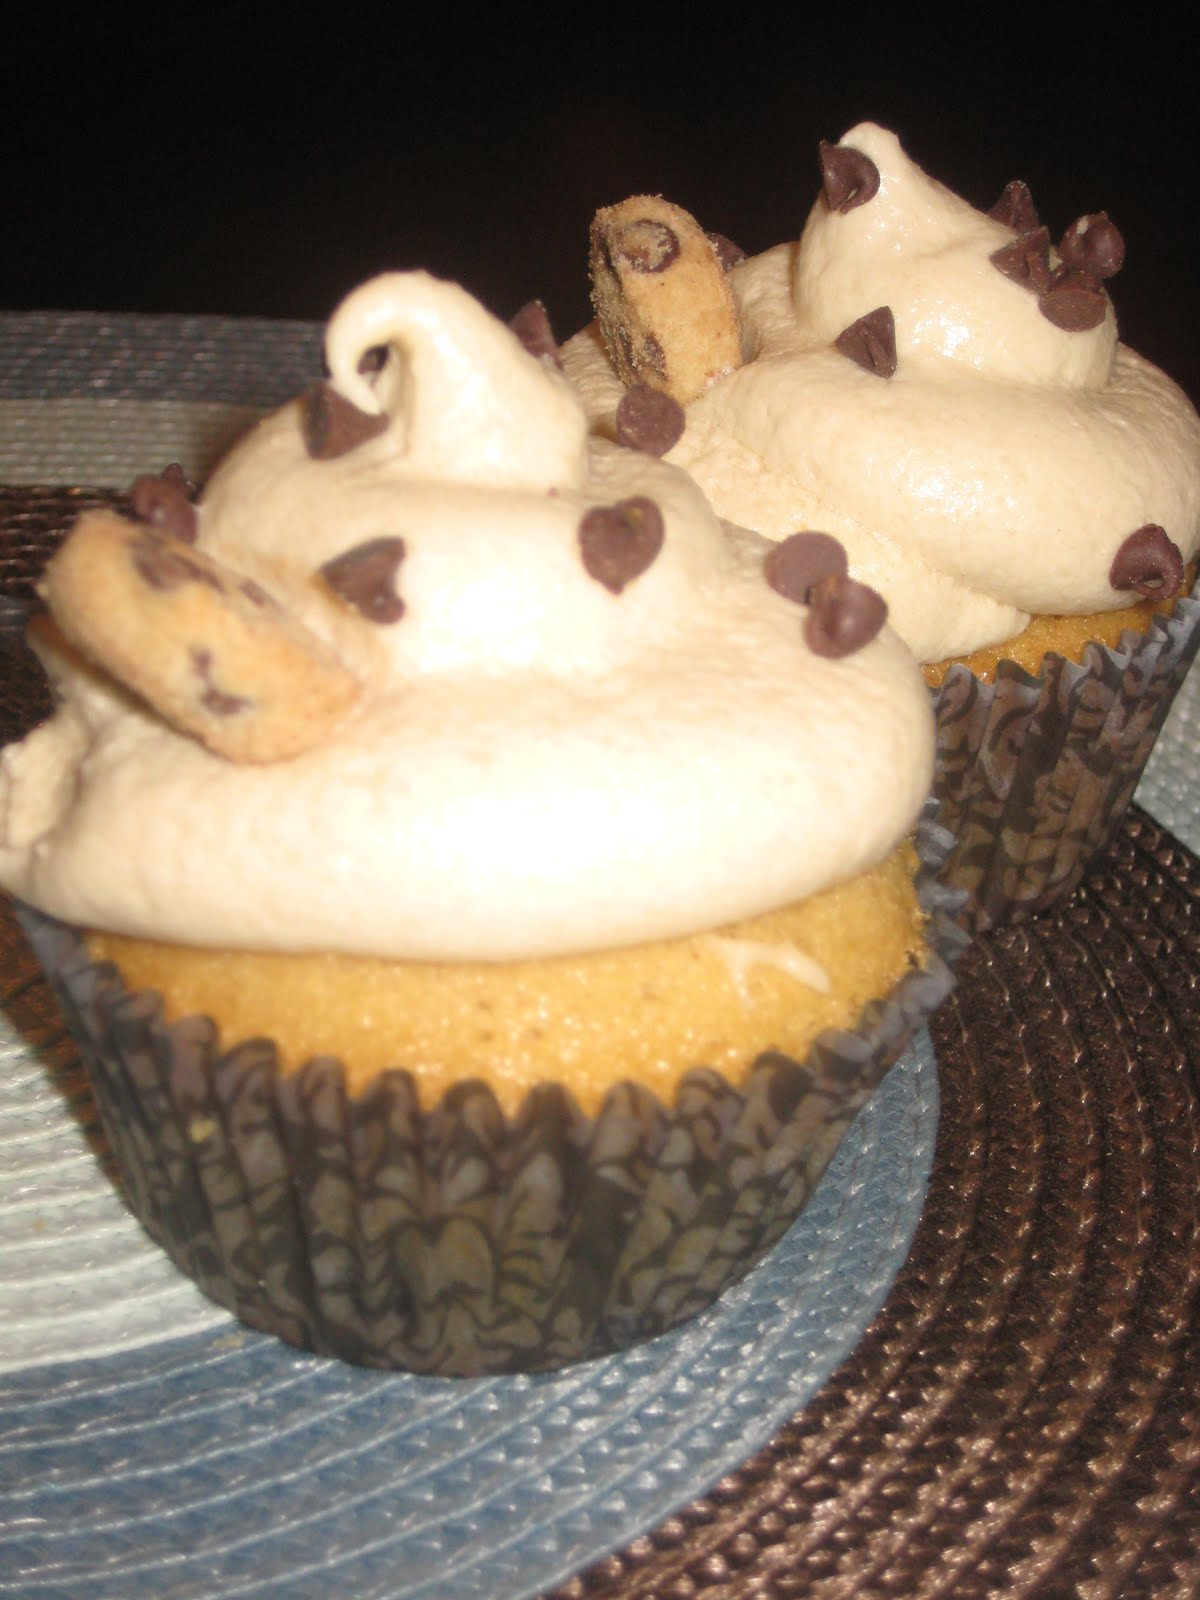 New Adventures into the Cupcake World